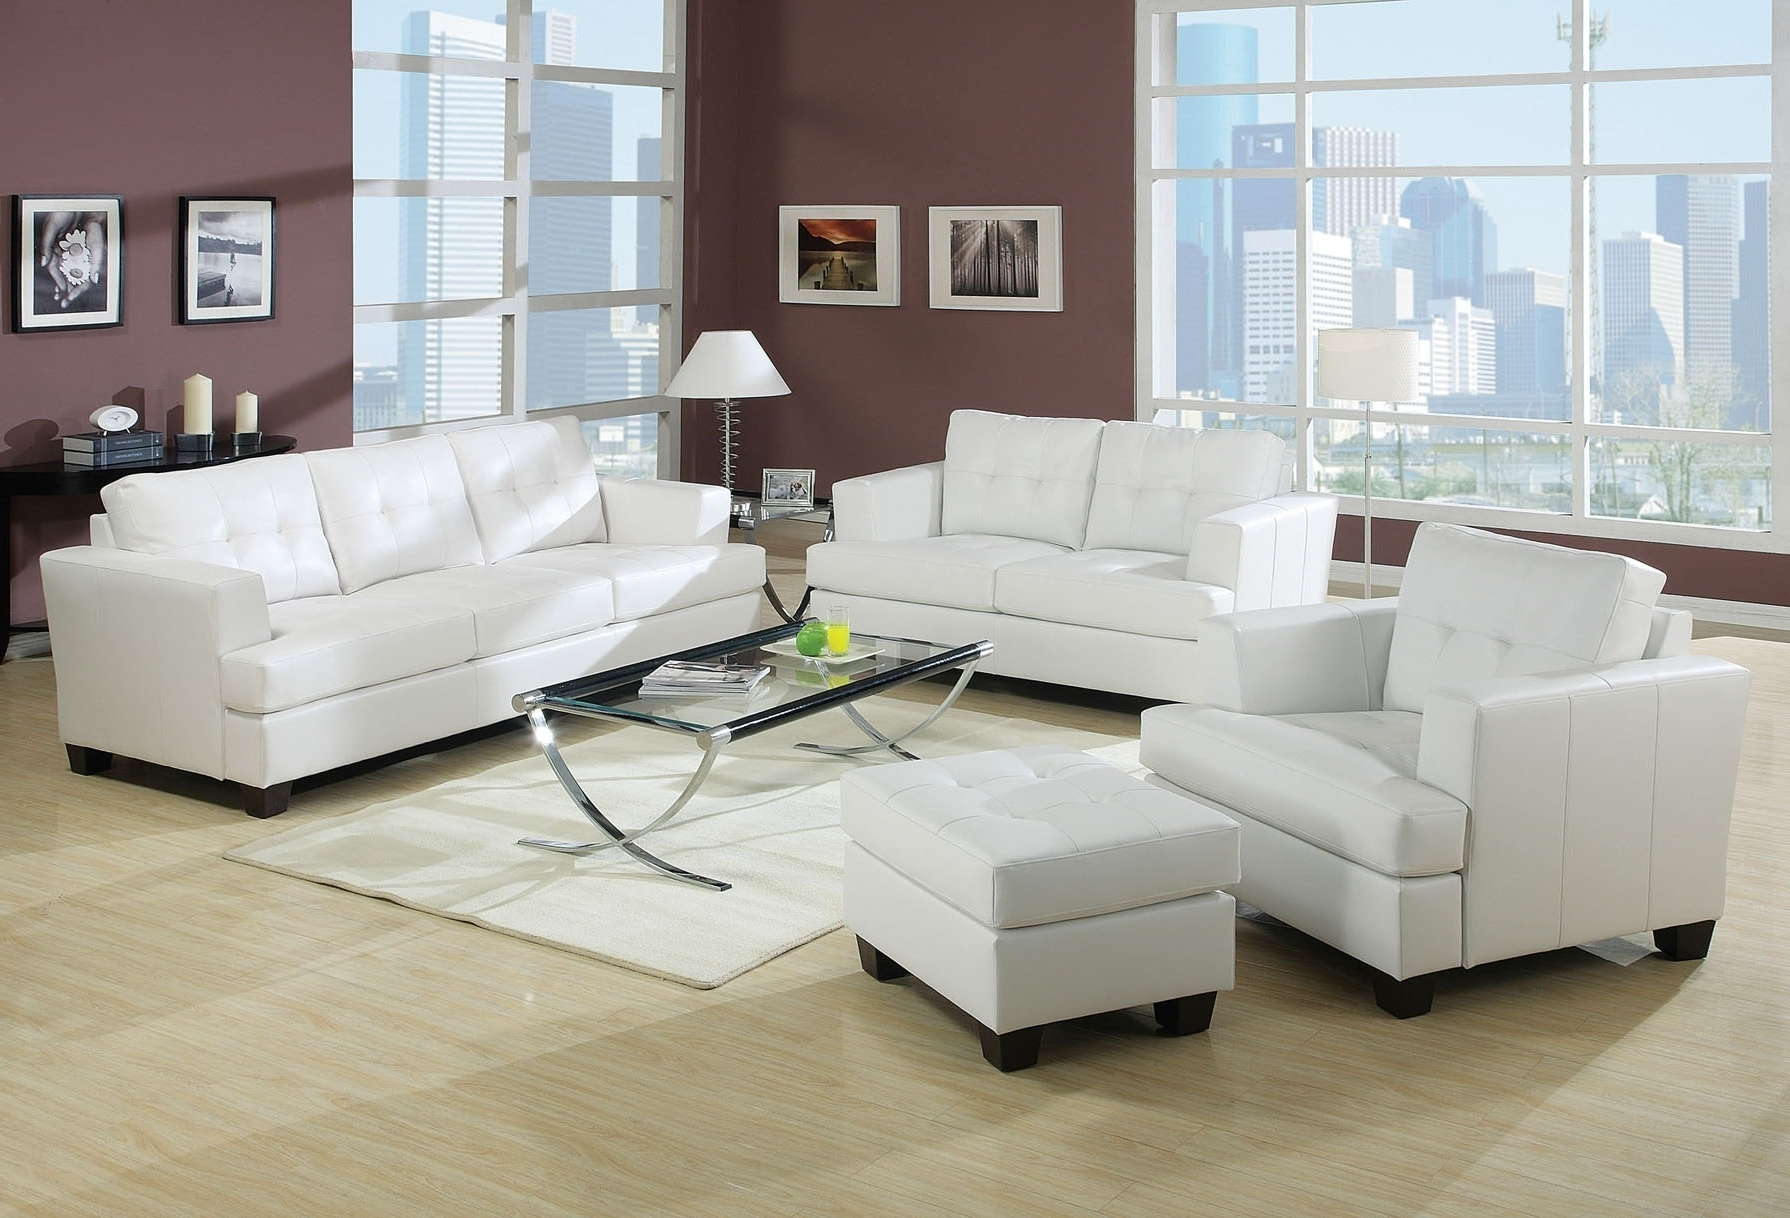 Well Liked Modern White Leather Corner Sofas Sofa And Chair Uk Contemporary In White Leather Corner Sofas (View 13 of 20)